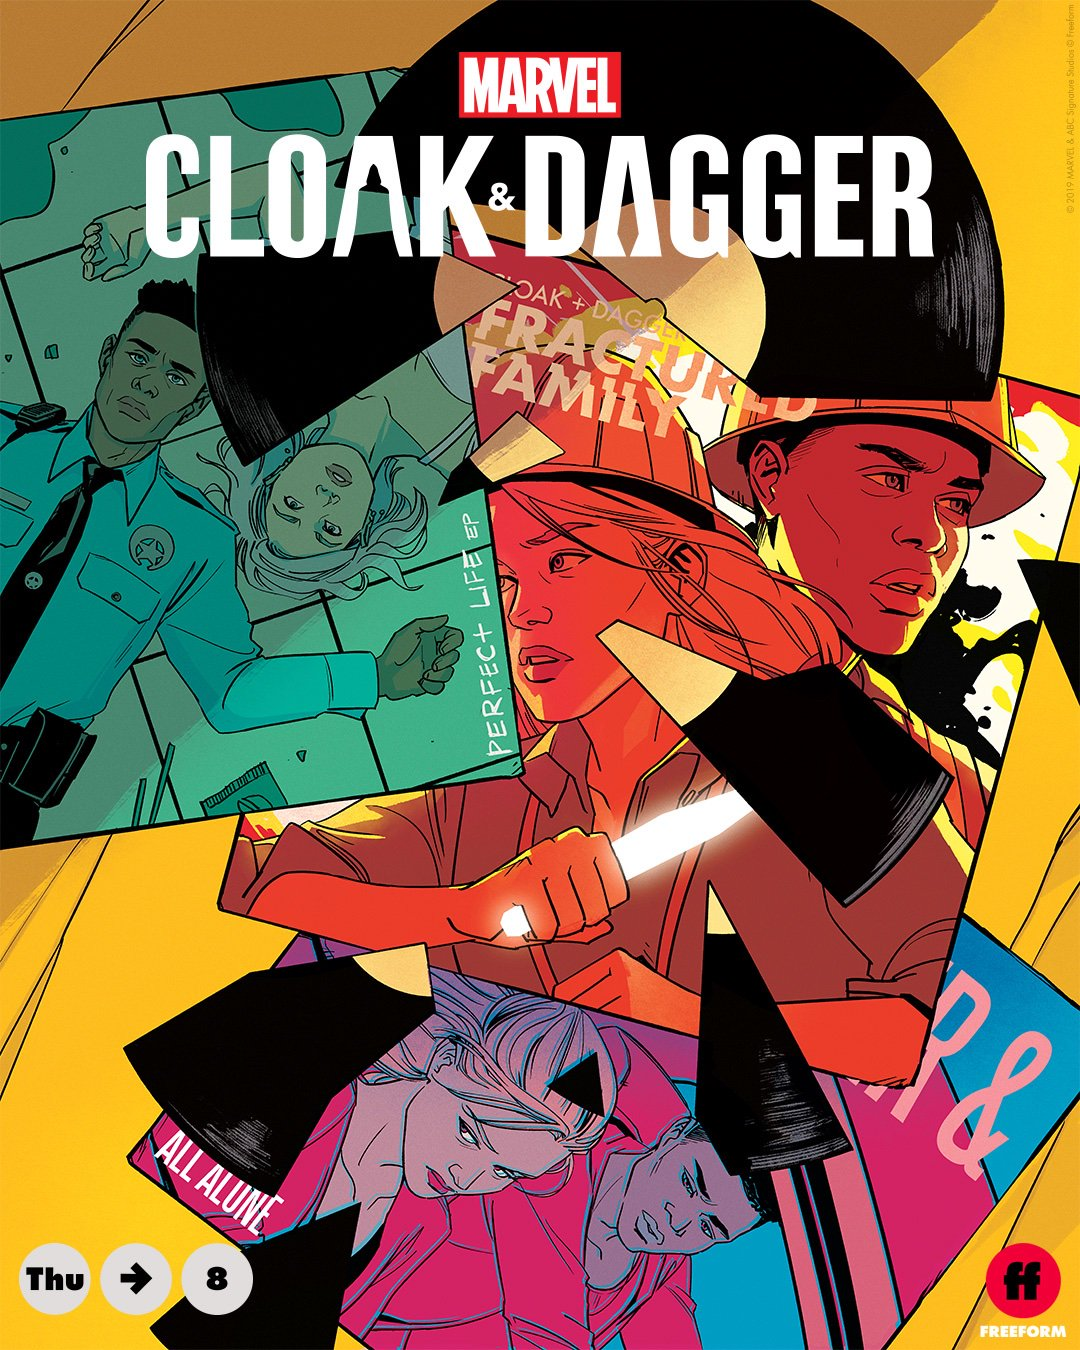 Cloak and Dagger Season 2 Episode 6 Poster